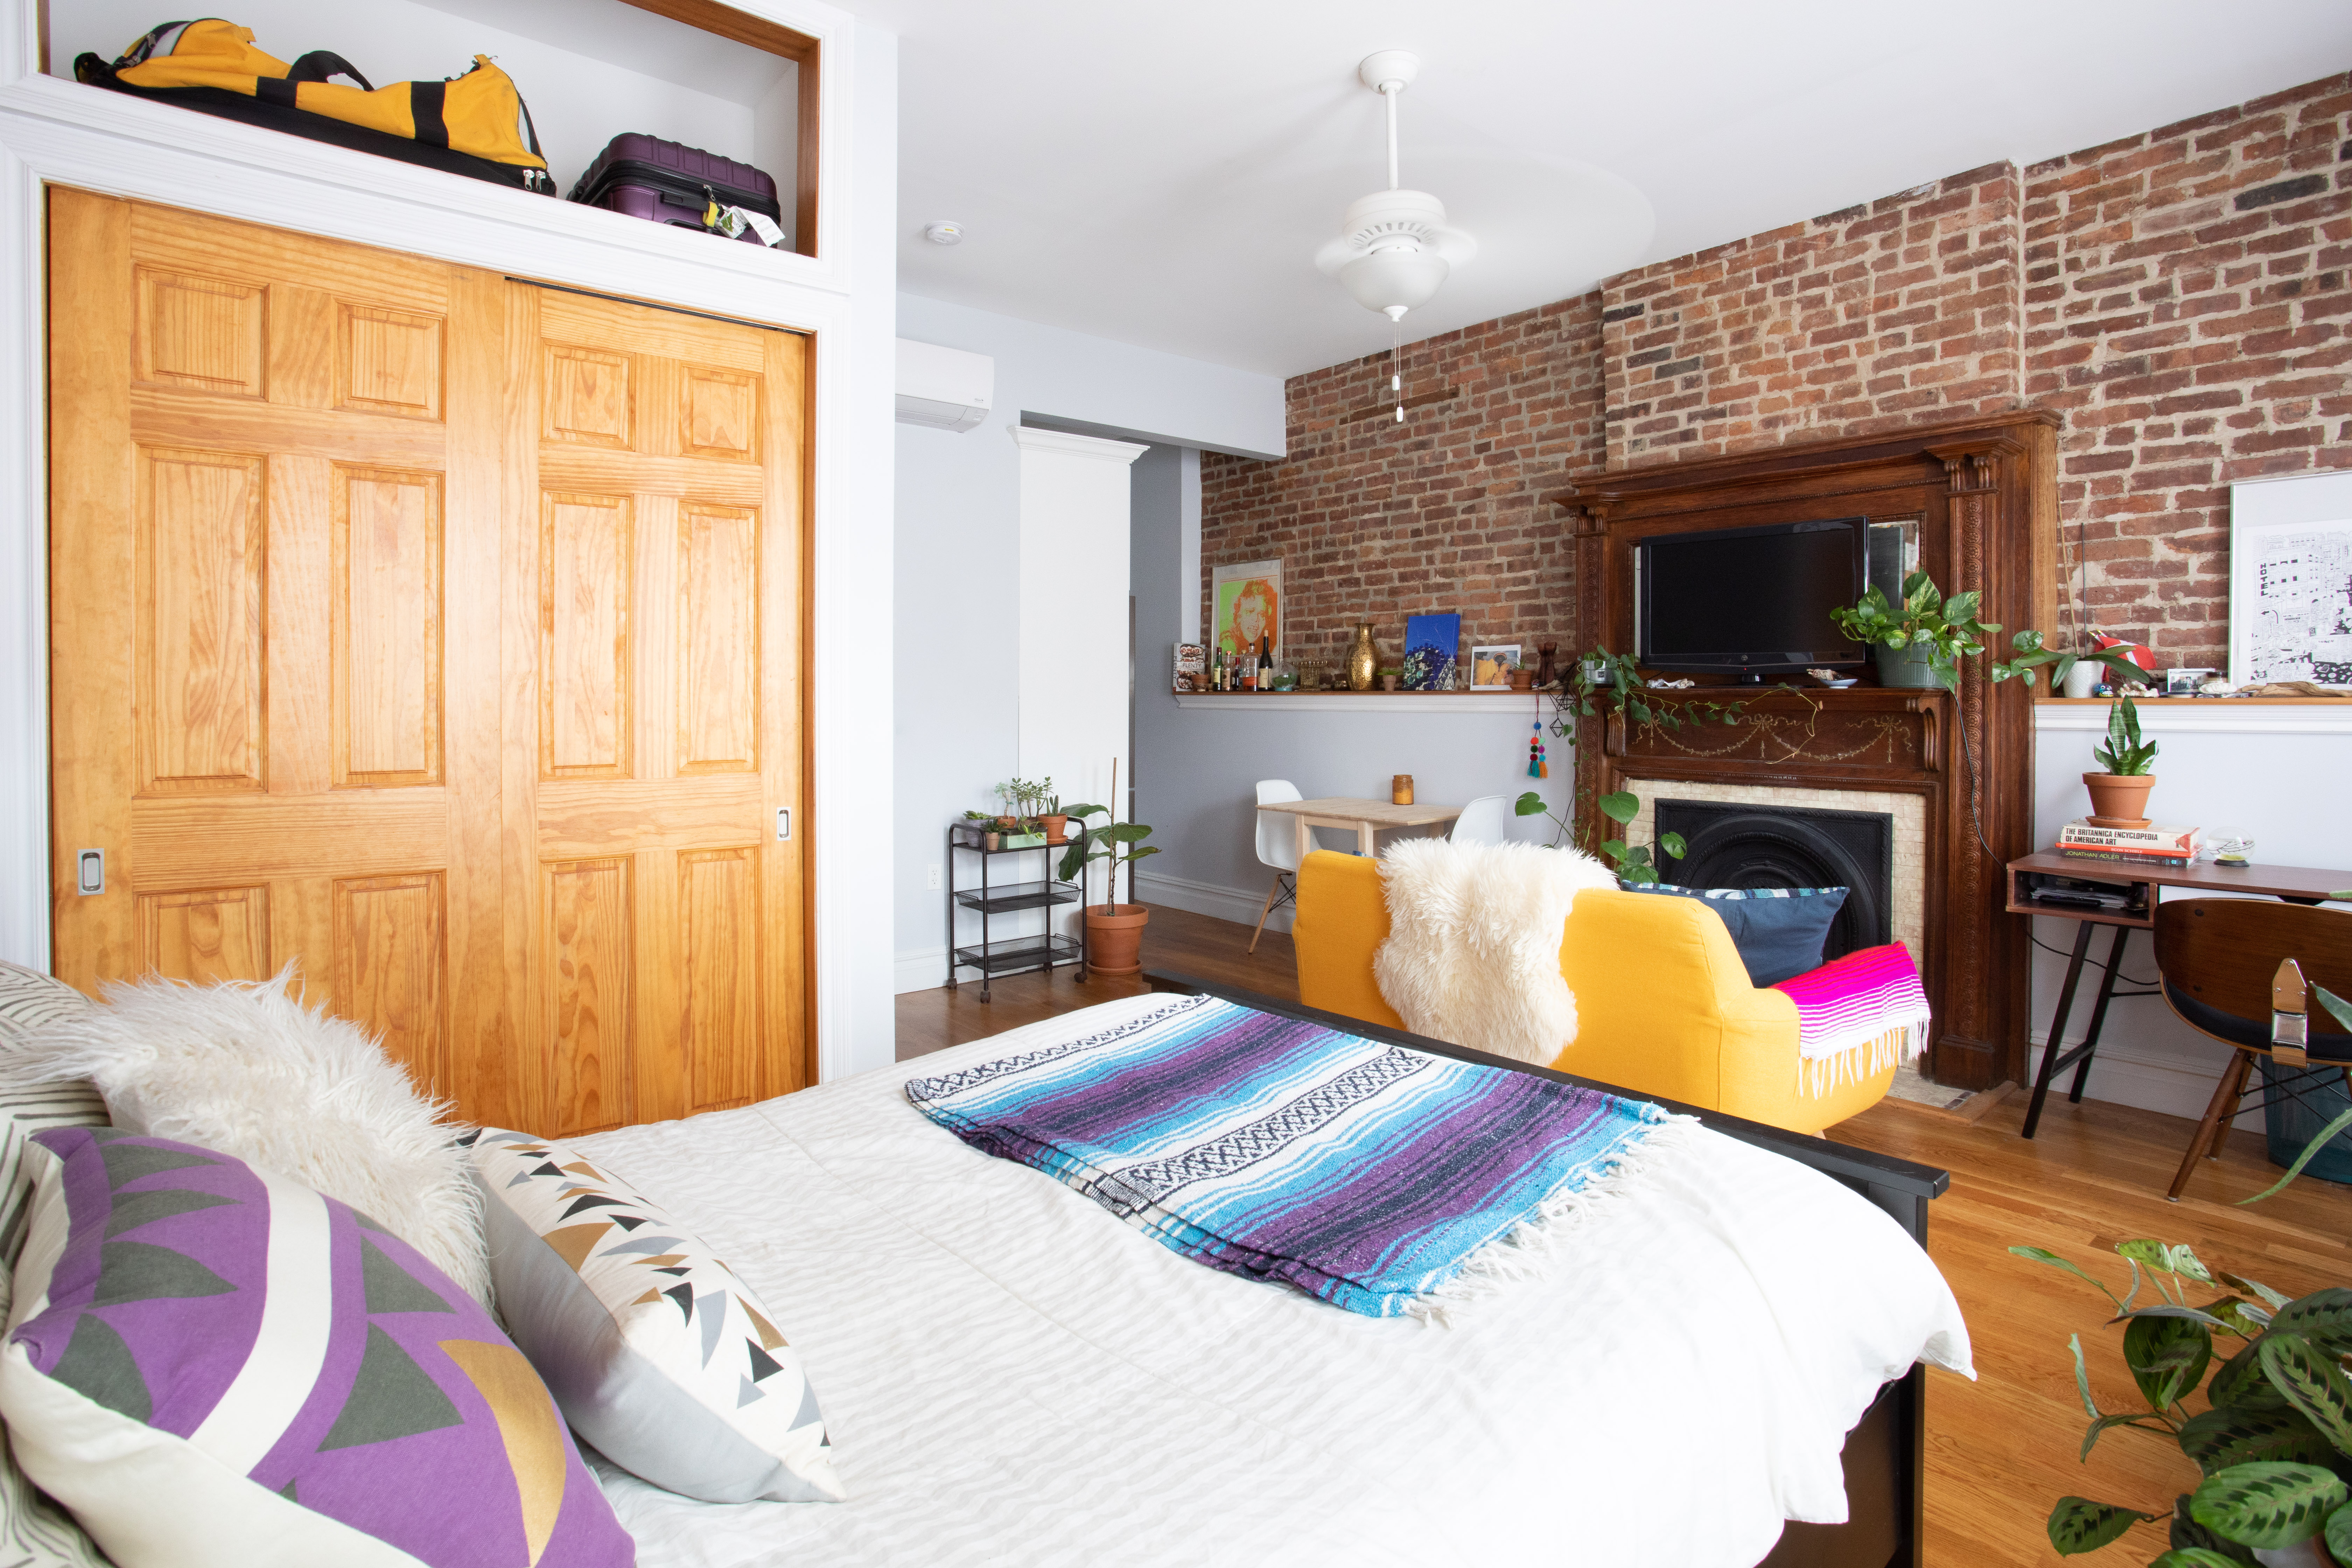 The Best Studio Apartment Layout According To Real Estate Agents Apartment Therapy